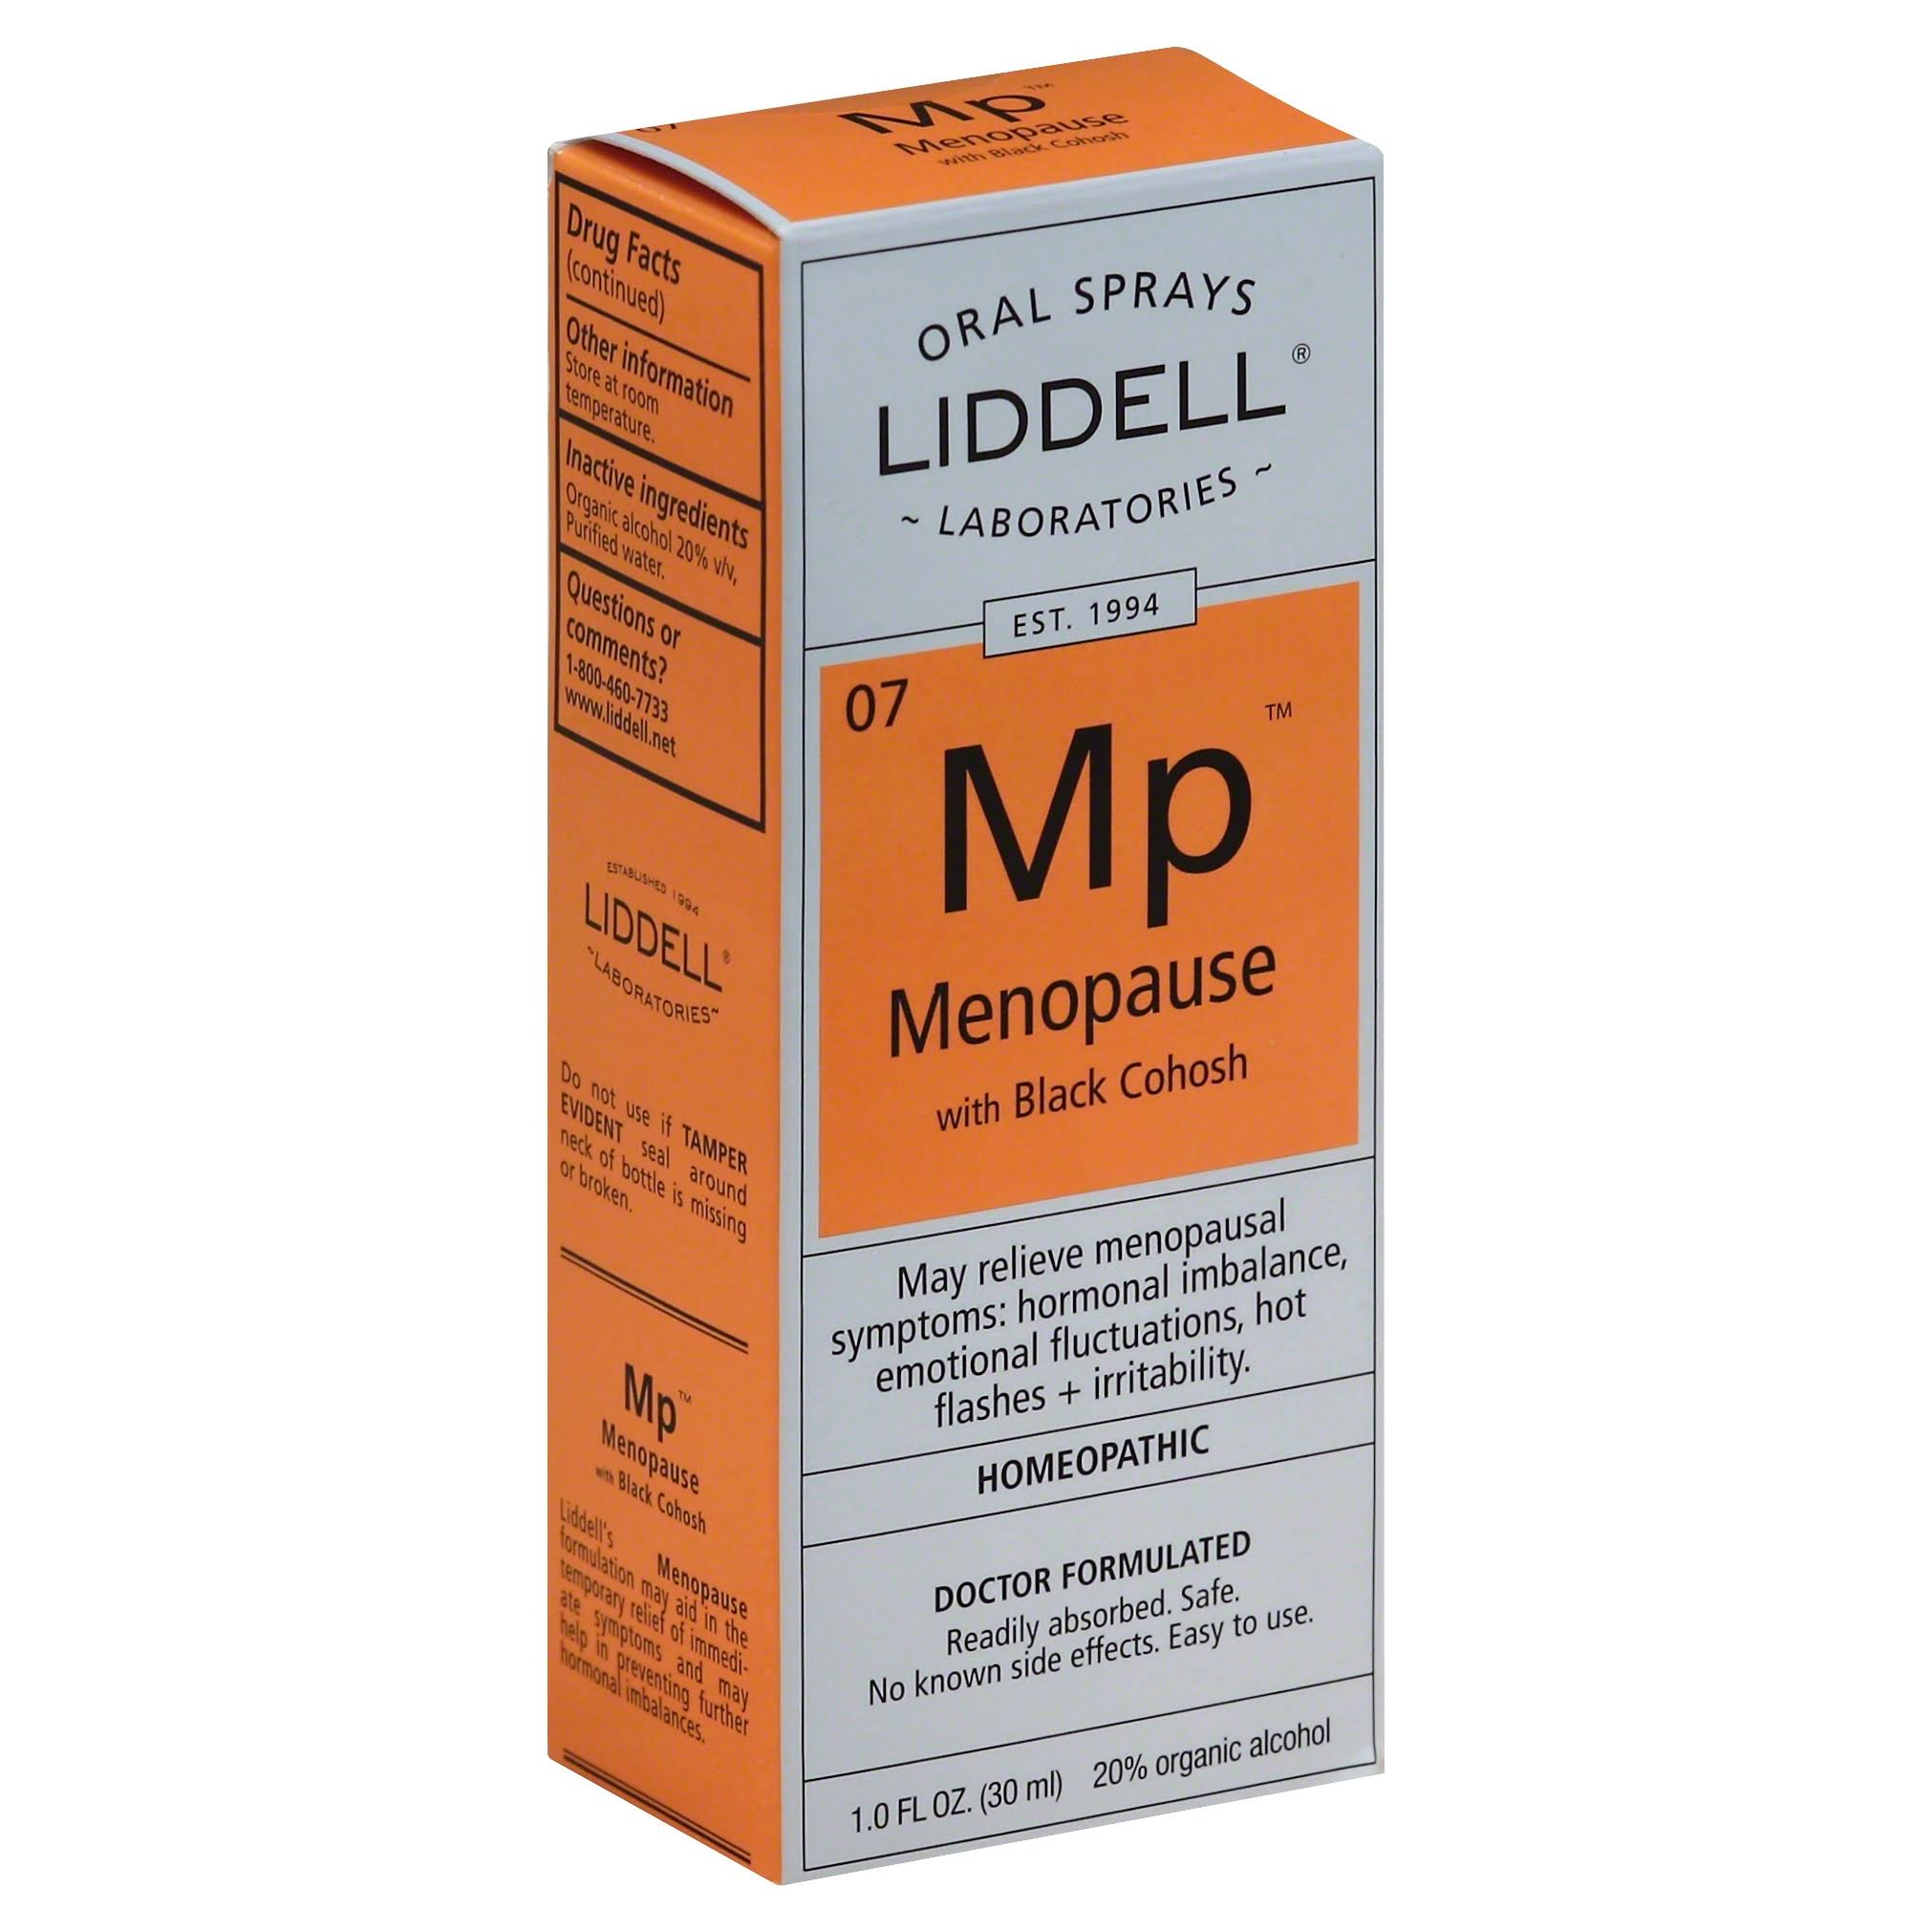 Liddell Laboratories Menopause Spray - with Black Cohosh, 1oz